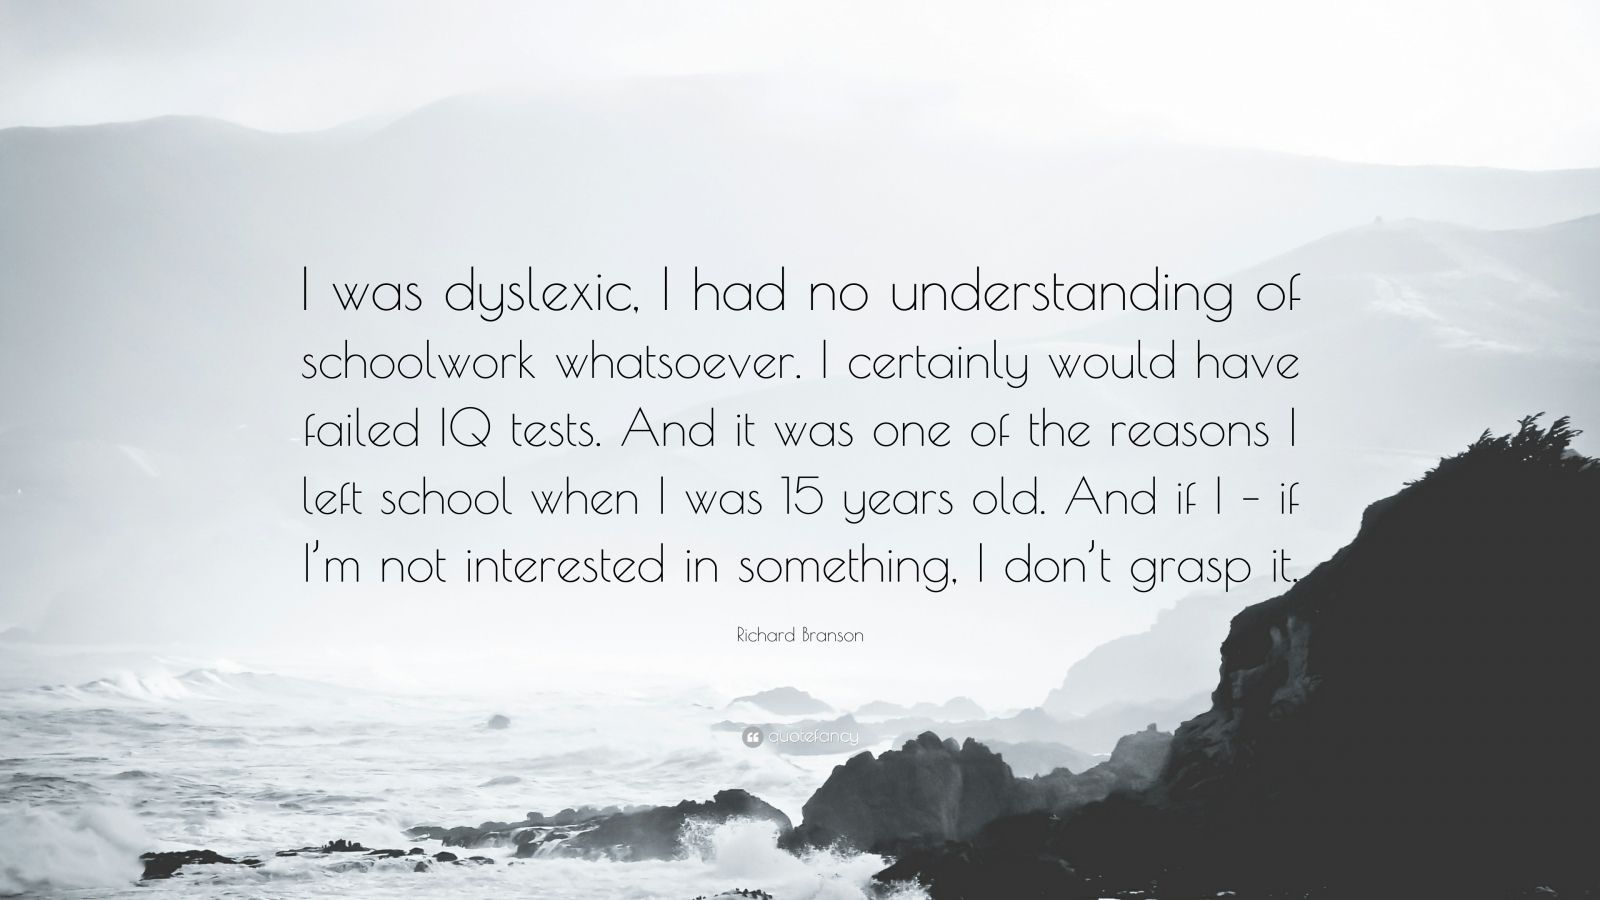 "Richard Branson Quote: ""I was dyslexic, I had no understanding of schoolwork whatsoever. I certainly would have failed IQ tests. And it was one of the reasons I left school when I was 15 years old. And if I – if I'm not interested in something, I don't grasp it."""